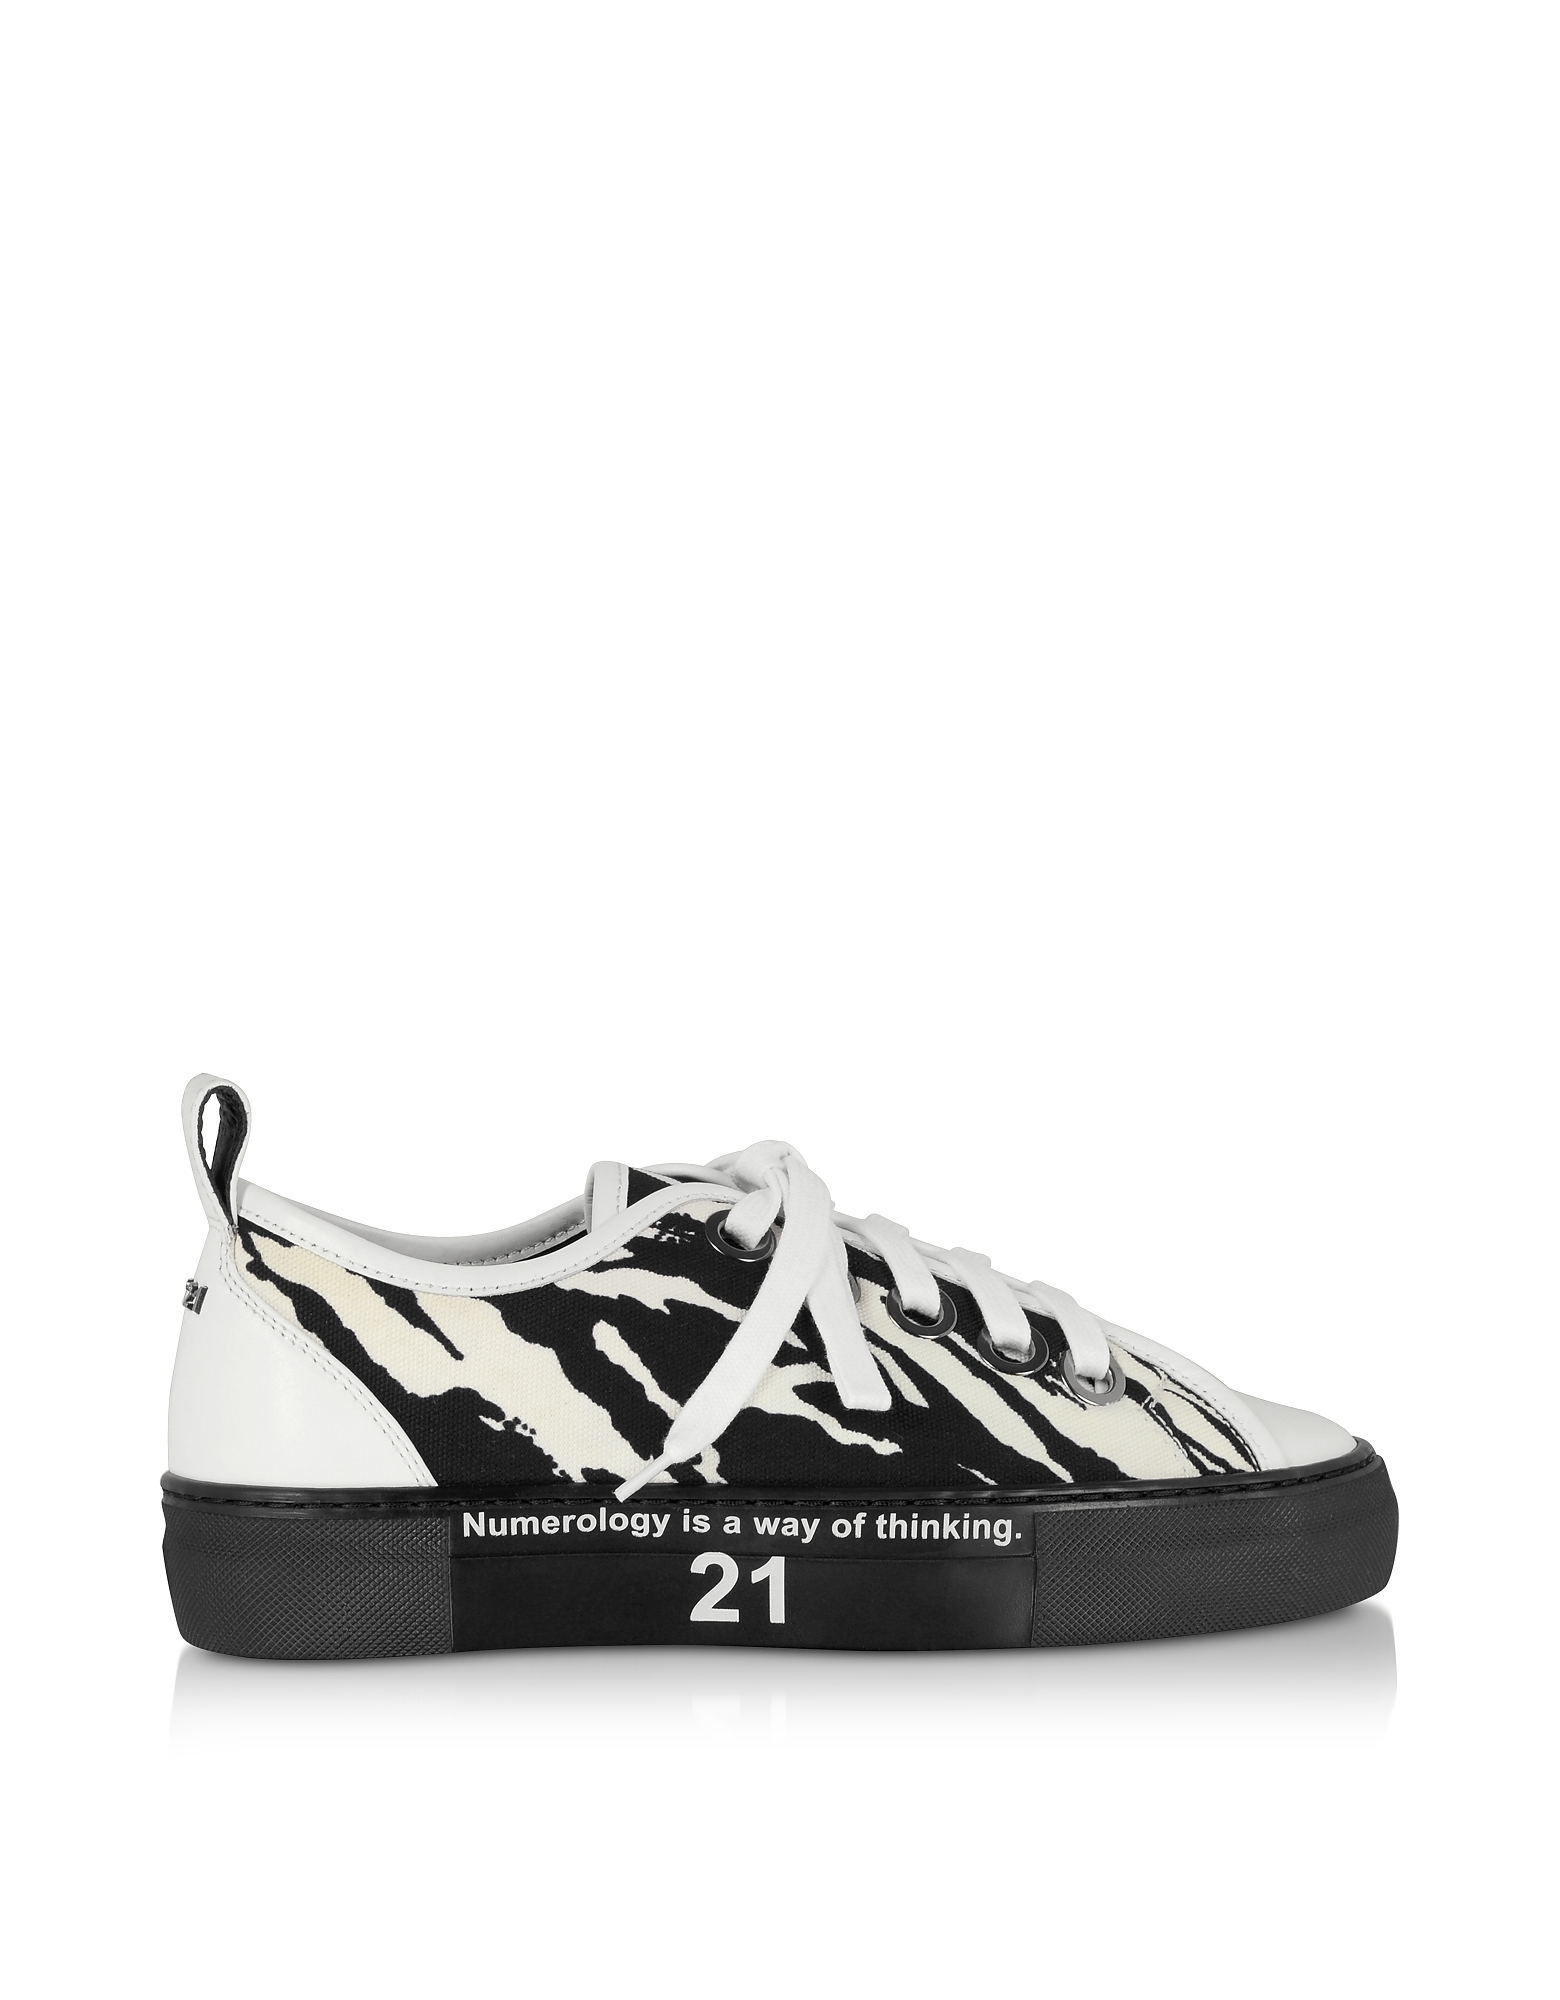 N°21 Designer Shoes, Zebra Gymnic Women